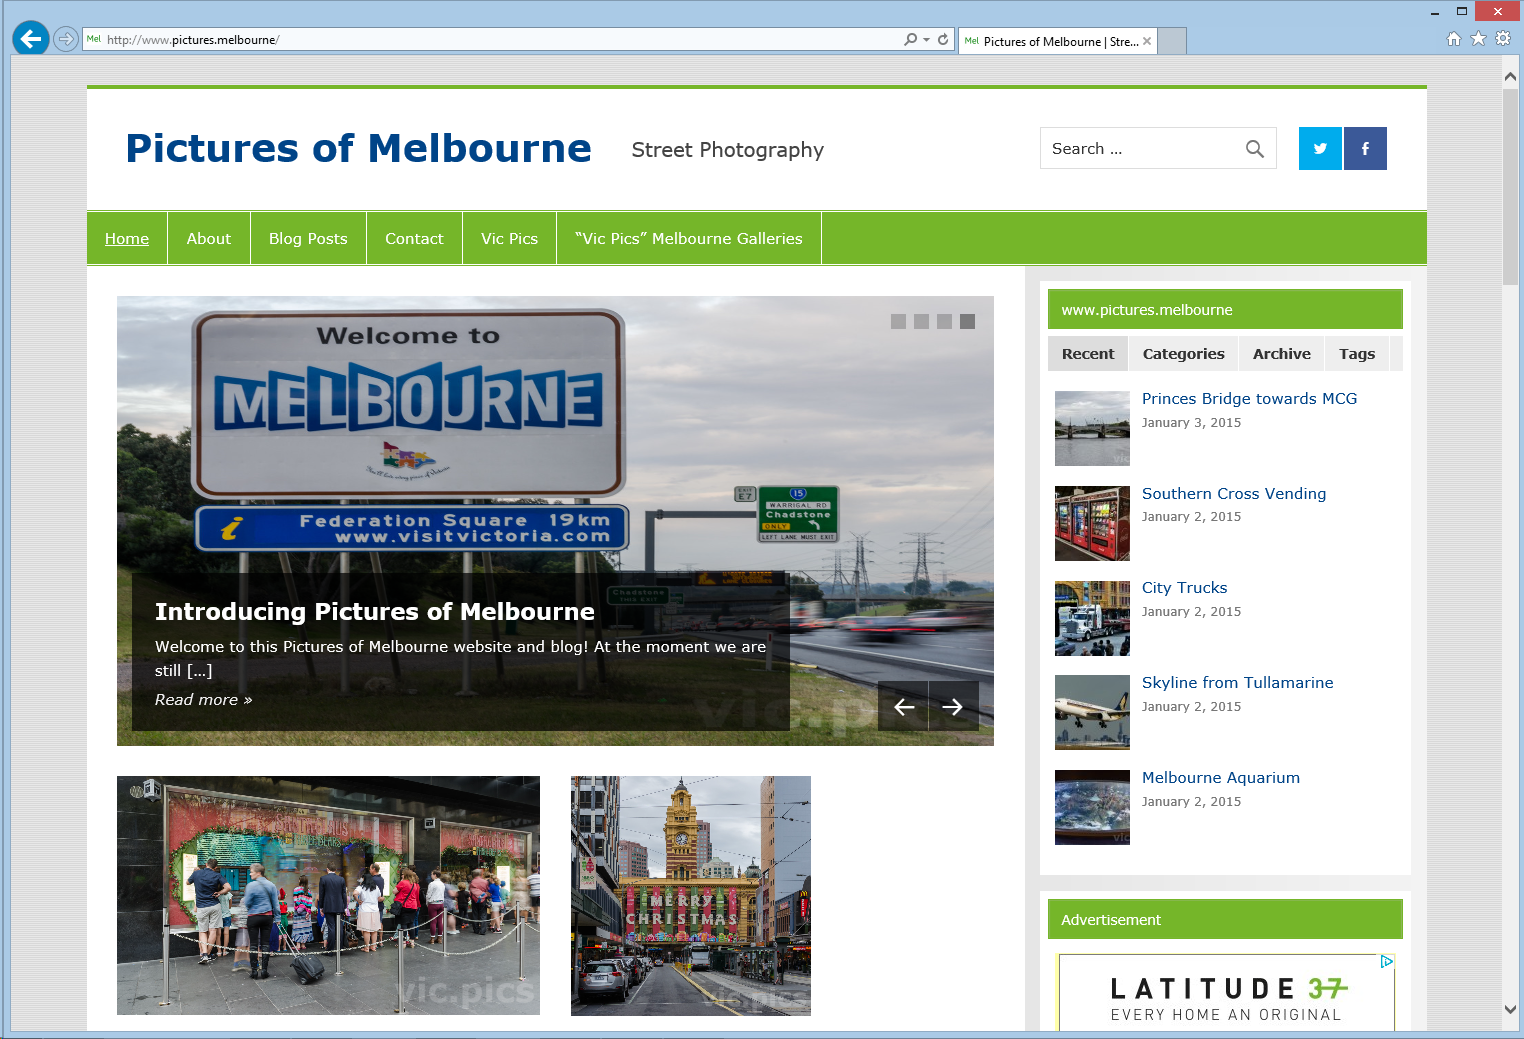 Pictures of Melbourne website screenshot